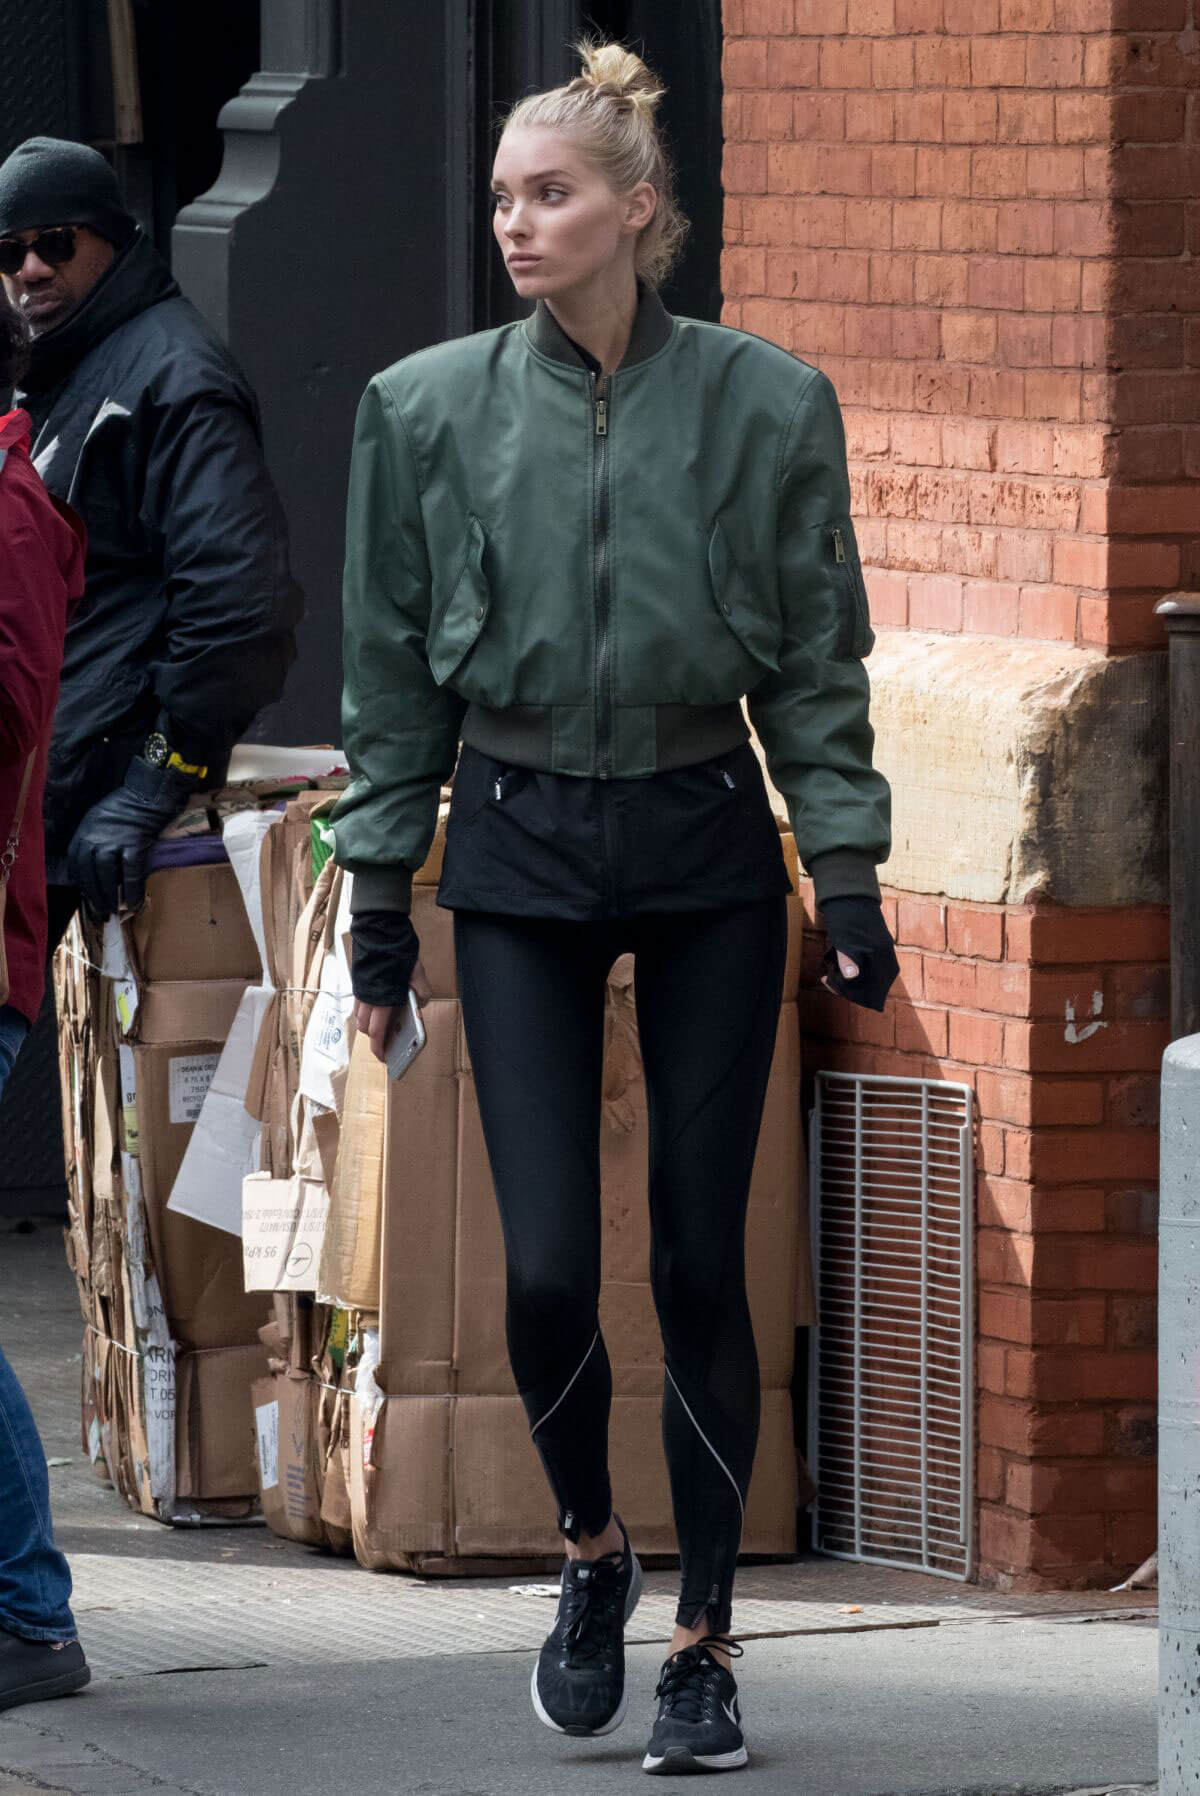 Elsa Hosk Stills Out and About in New York Images